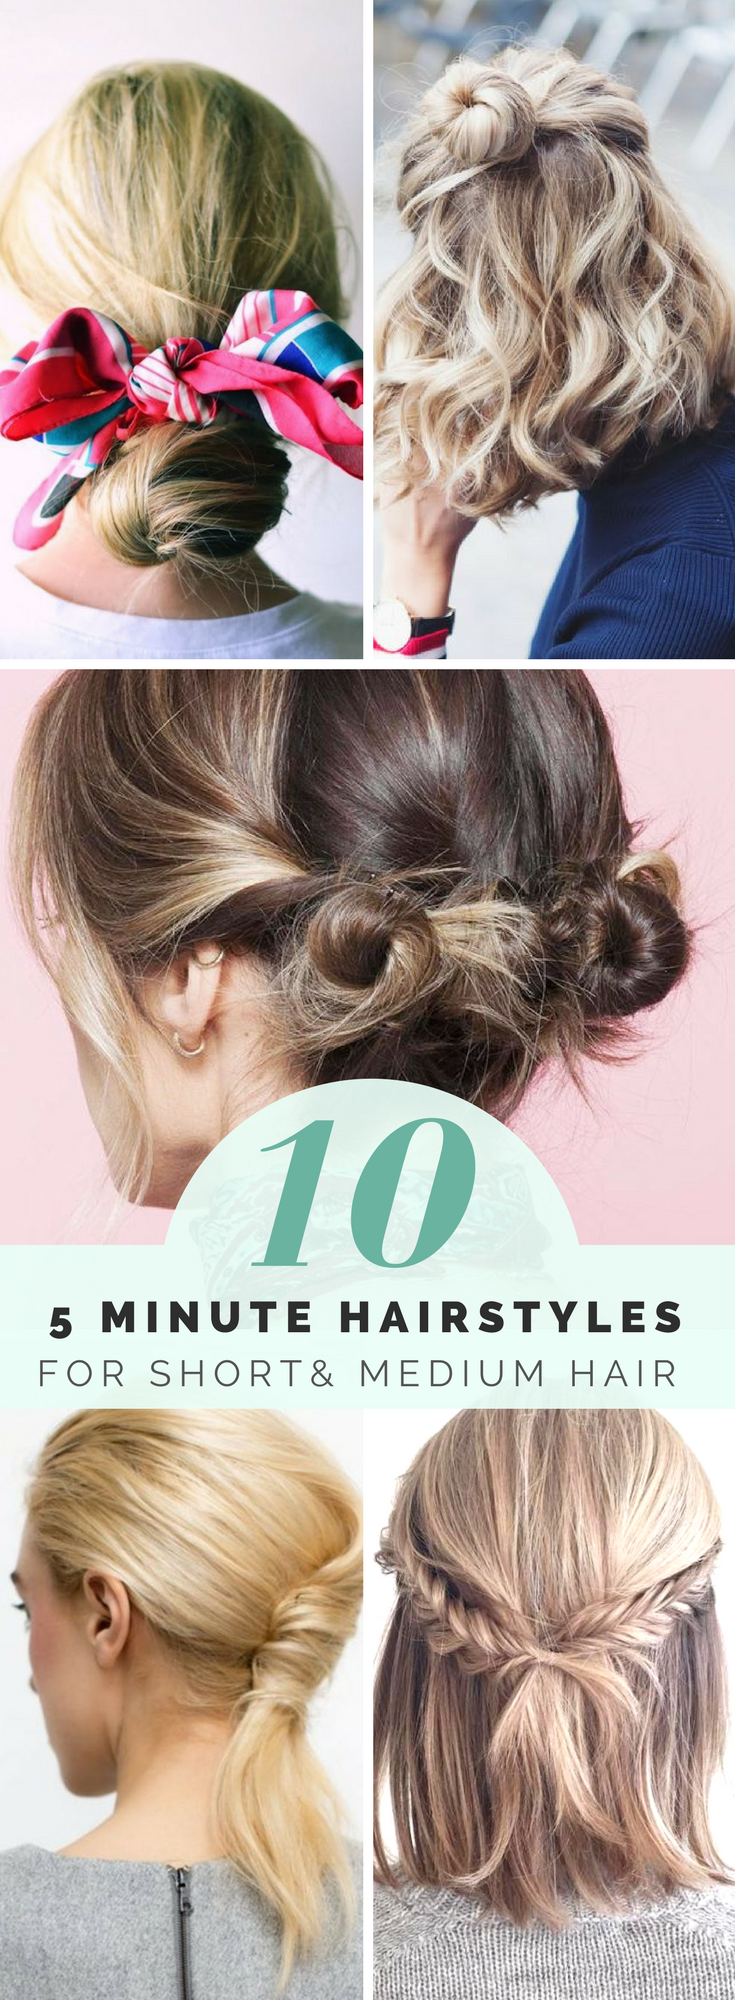 Quick and easy hairstyles for short hair you can do in minutes